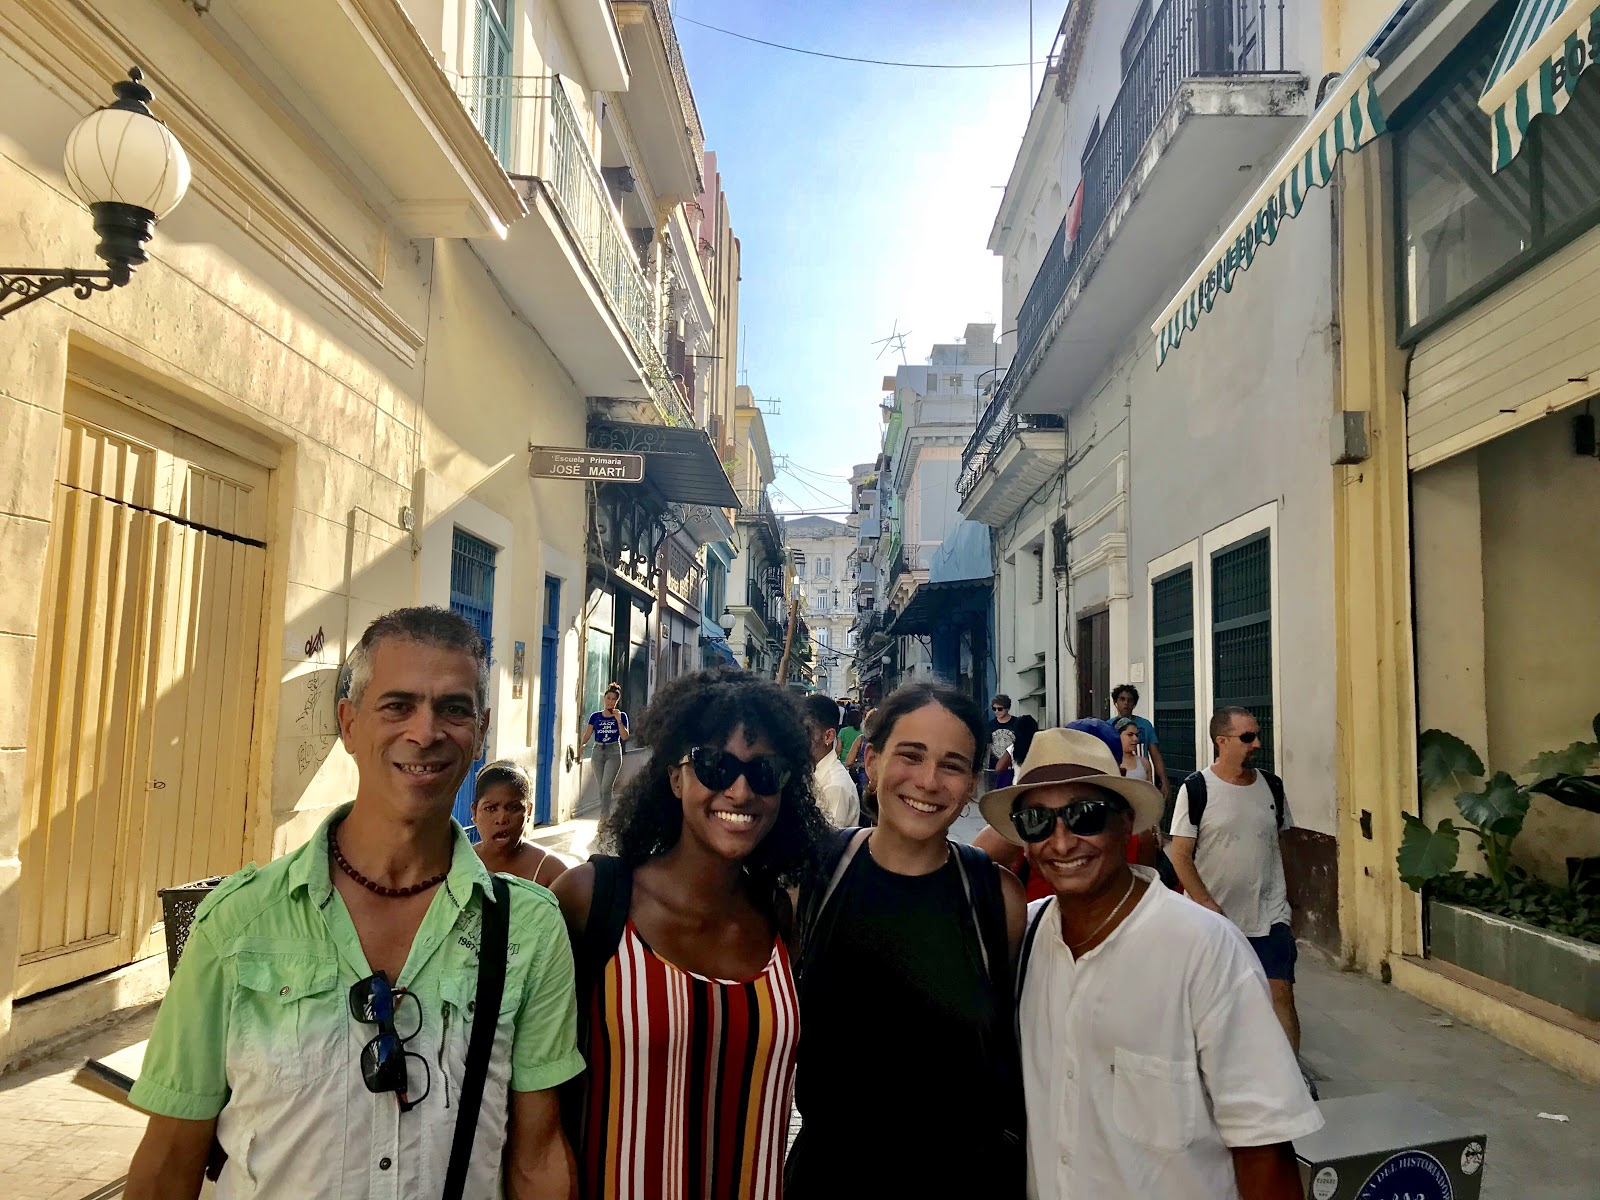 Wilfredo, Essence, Dani, and Isver on the streets of Cuba